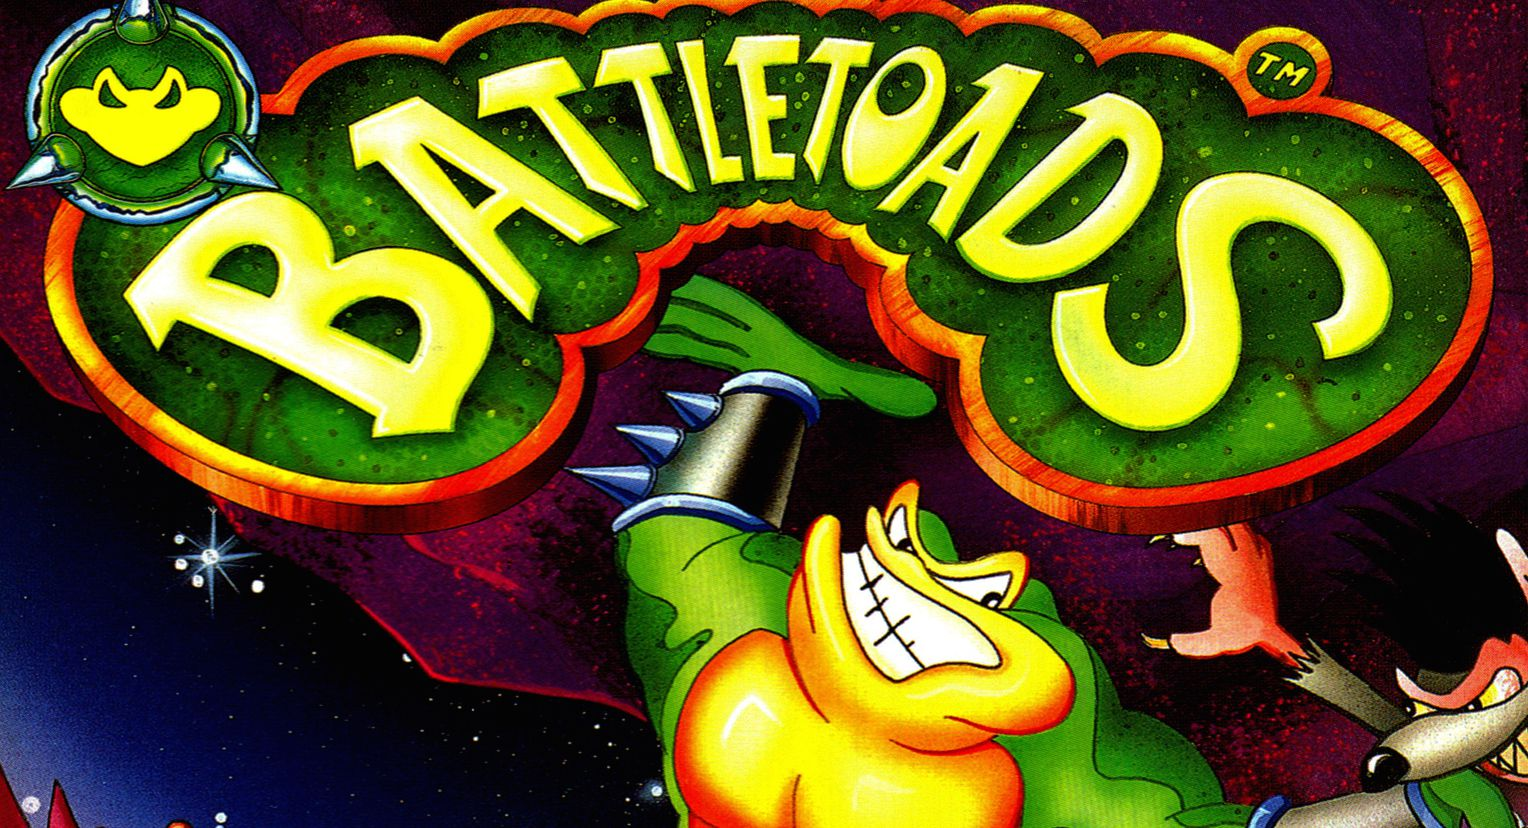 Xbox Head Teases Battletoads With T Shirt At Windows 10